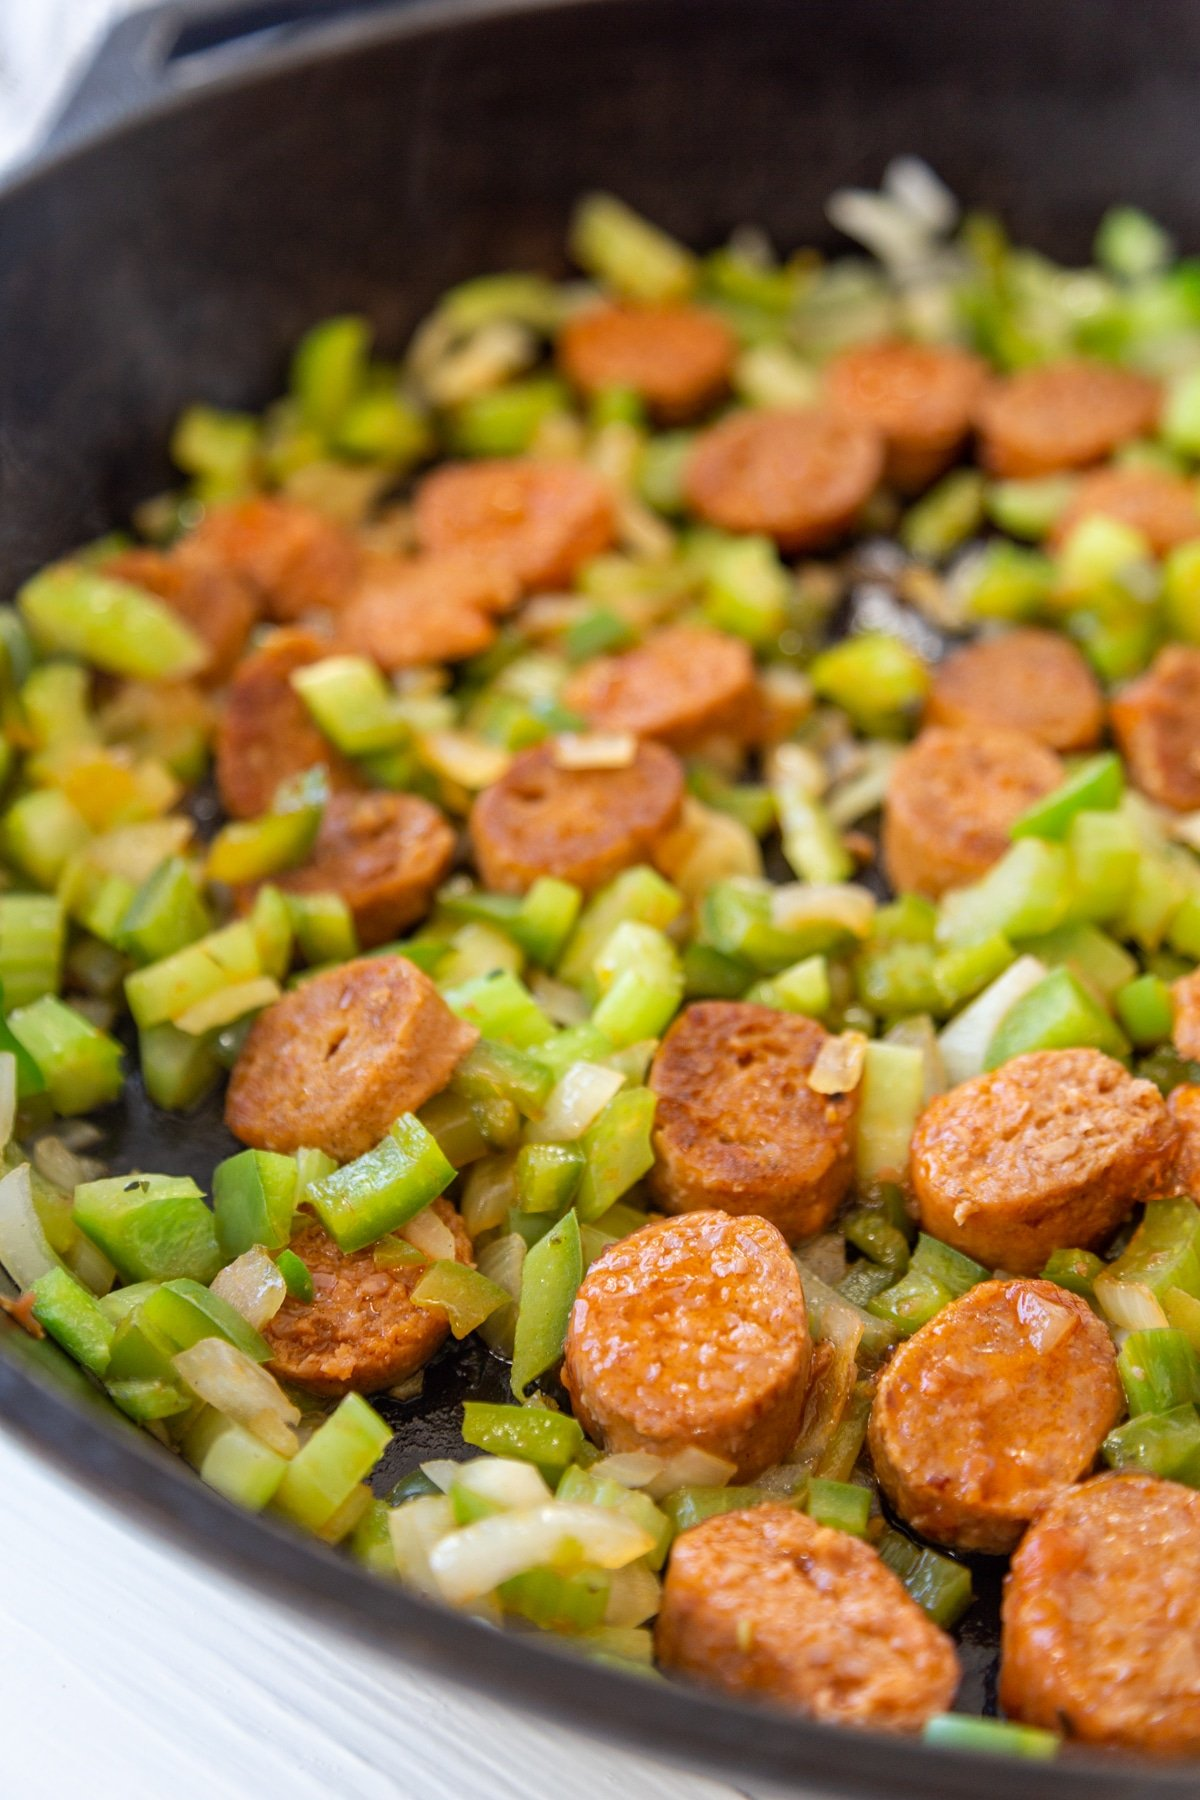 An iron skillet with onions, green bell pepper, celery, and sausage.